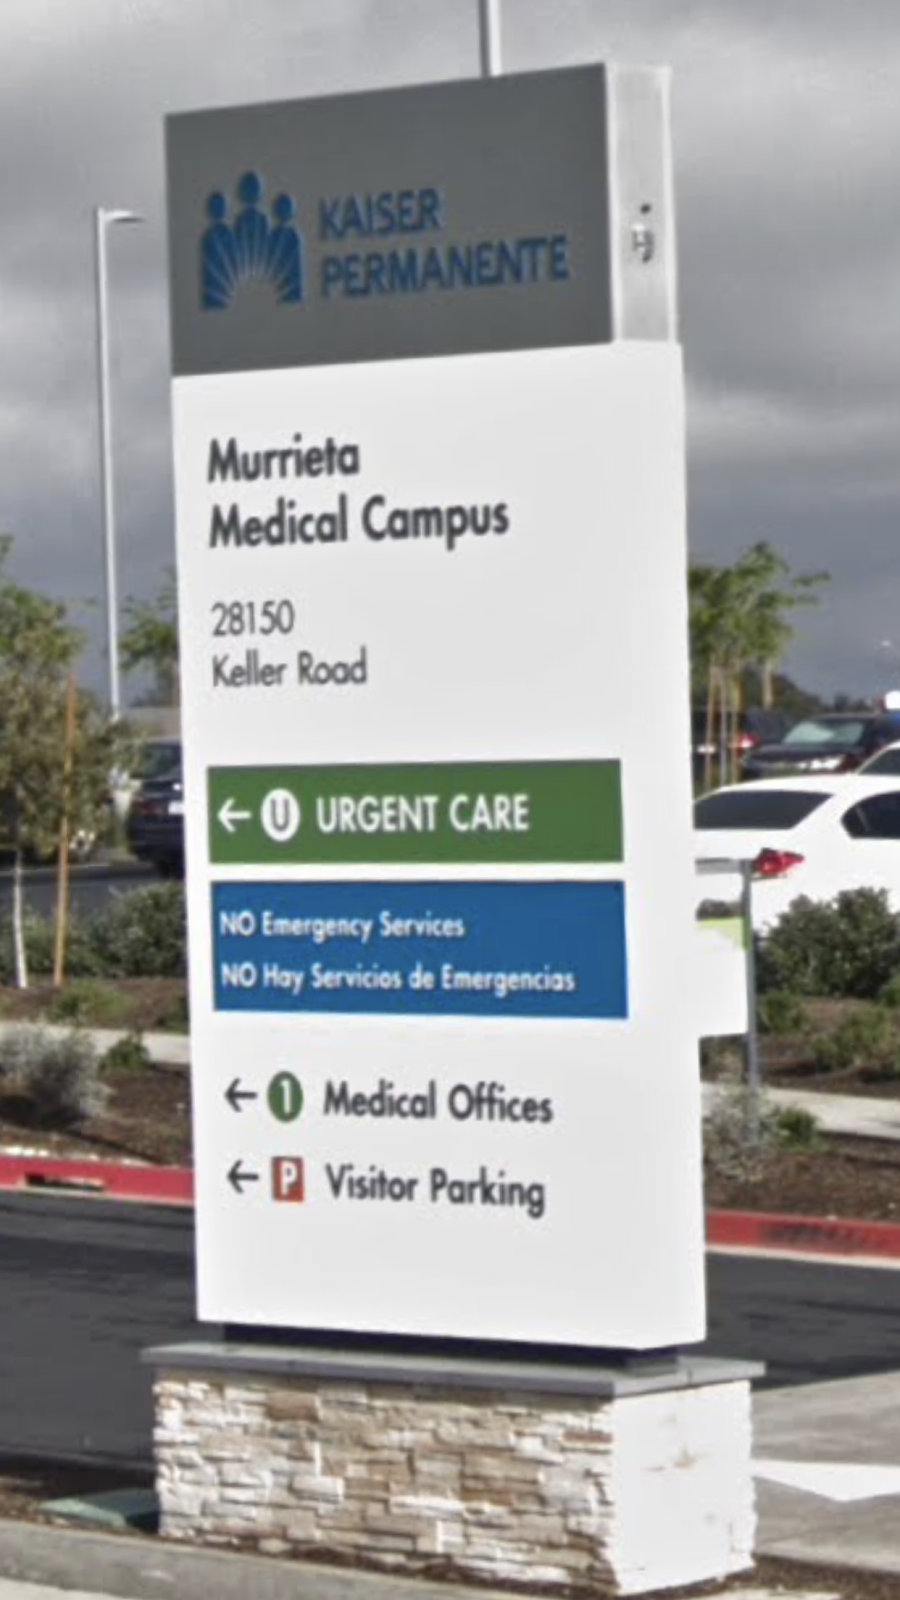 kaiser permanente contact number